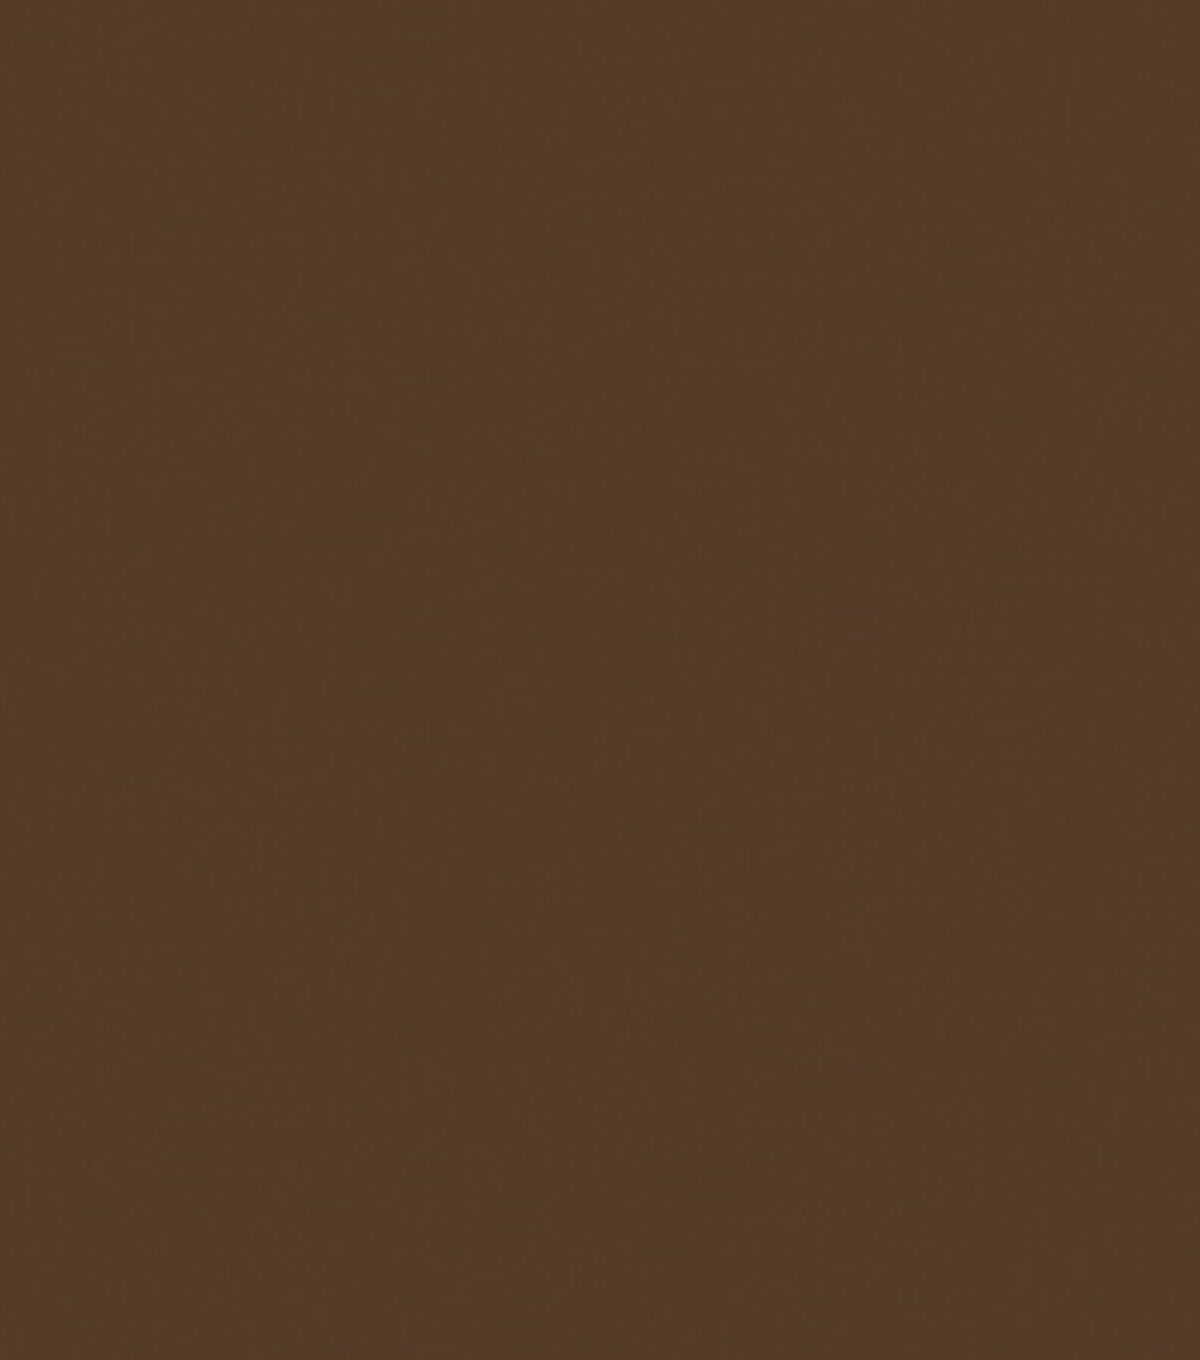 Delta Ceramcoat Acrylic Paint 2 oz, Burnt Umber